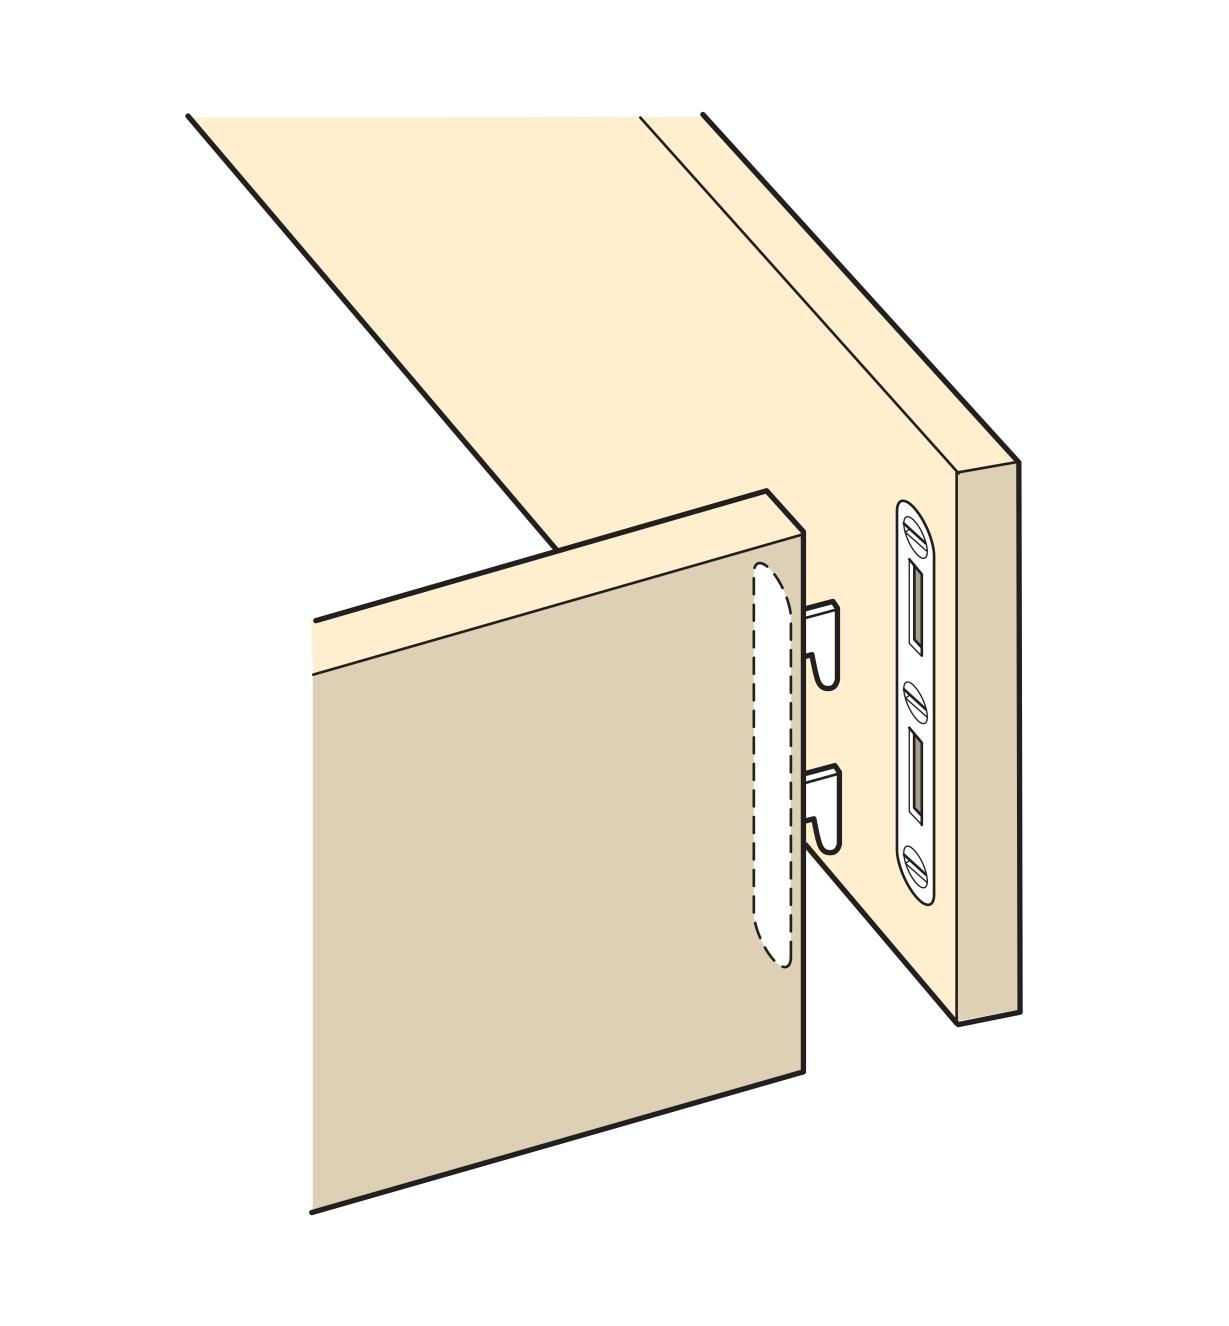 Illustration of Mortise Bedlocks installed on a bed frame